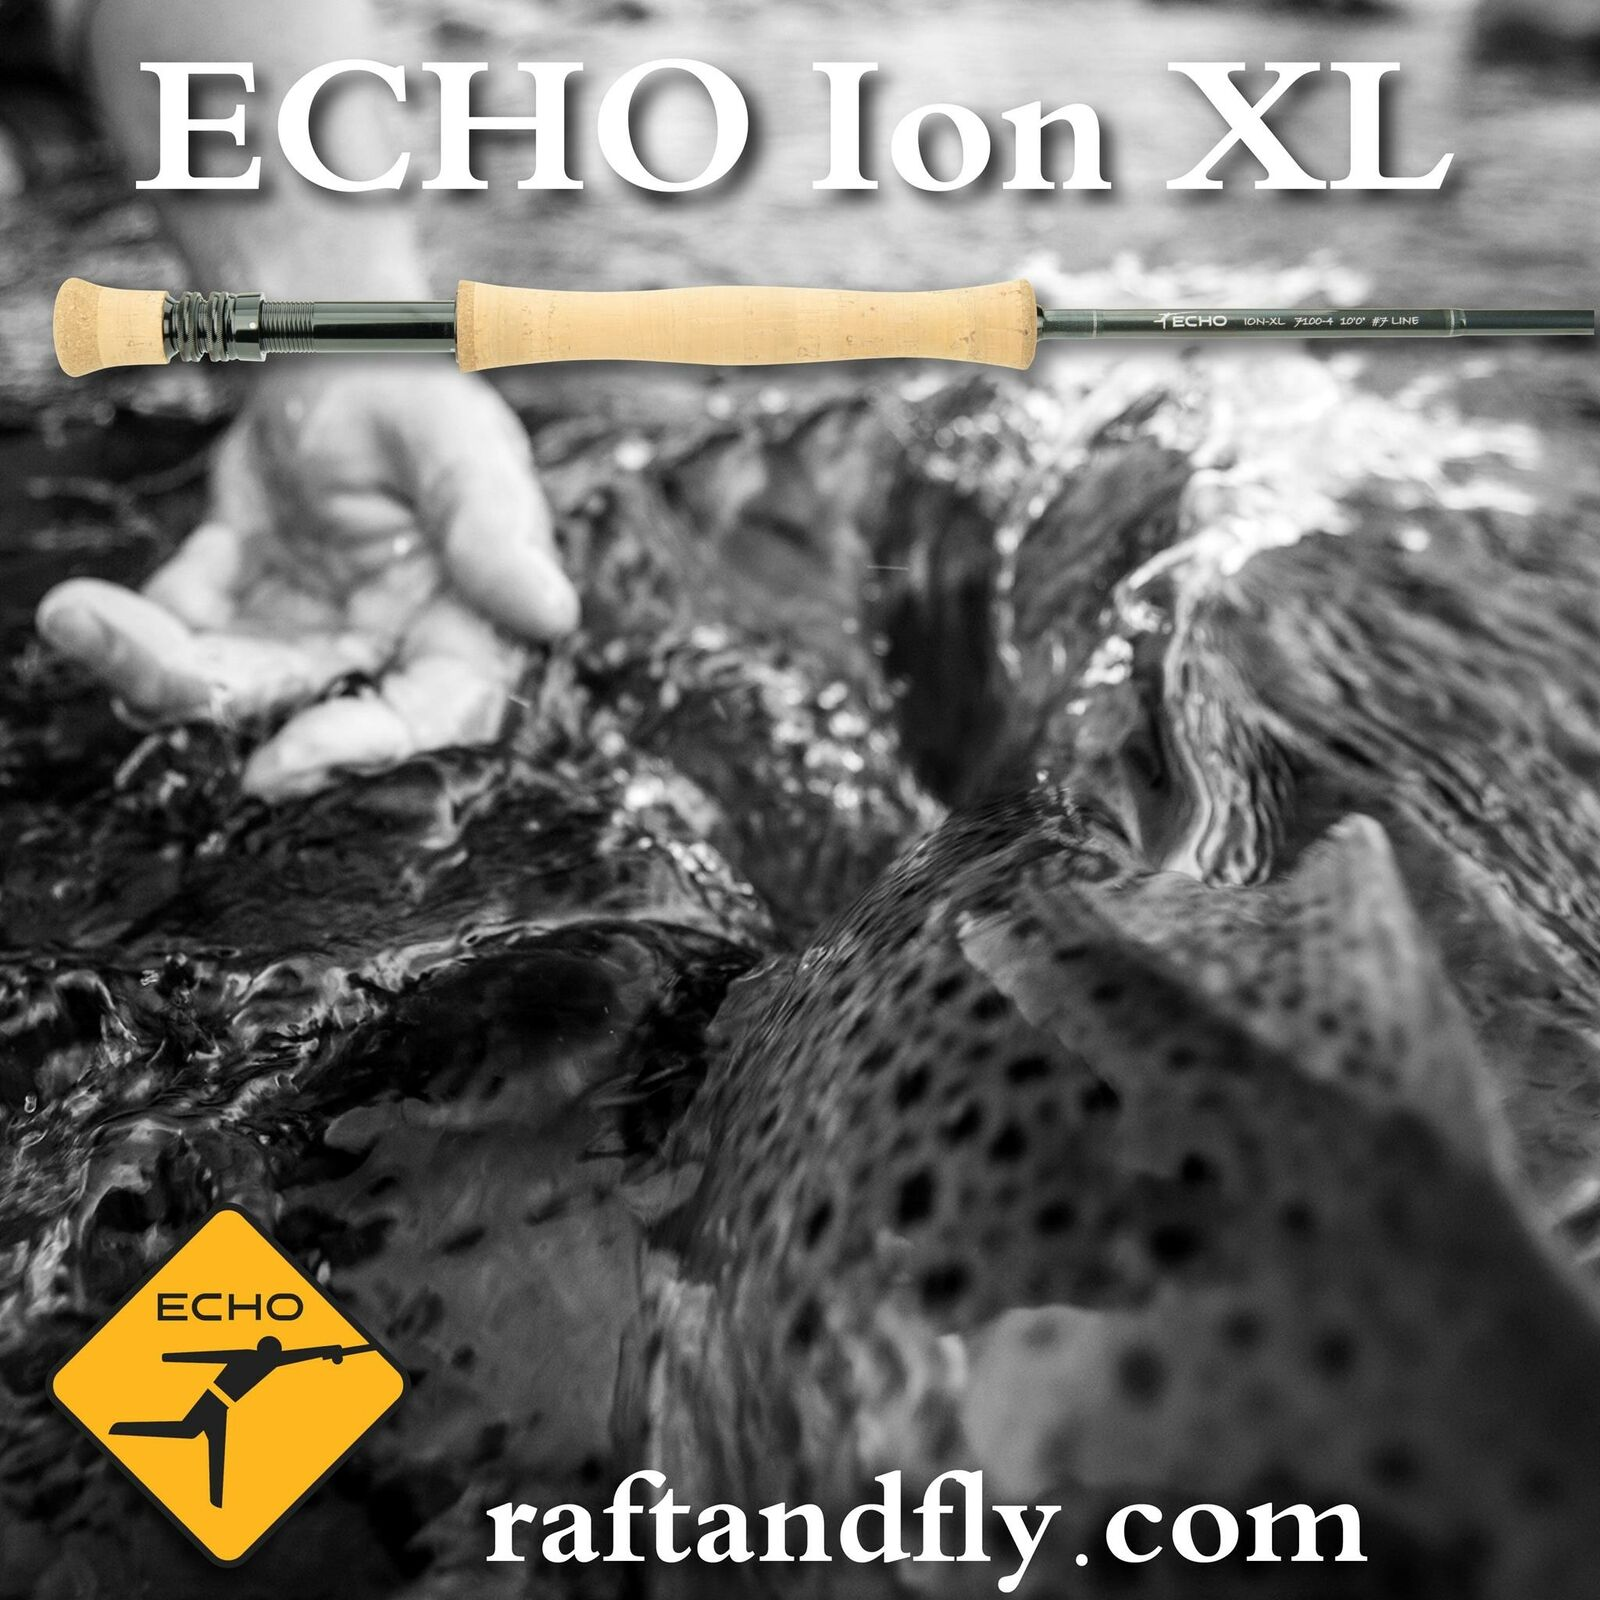 Echo Ion XL 7wt 10'0  Fly Rod - Lifetime Warranty - Free Shipping